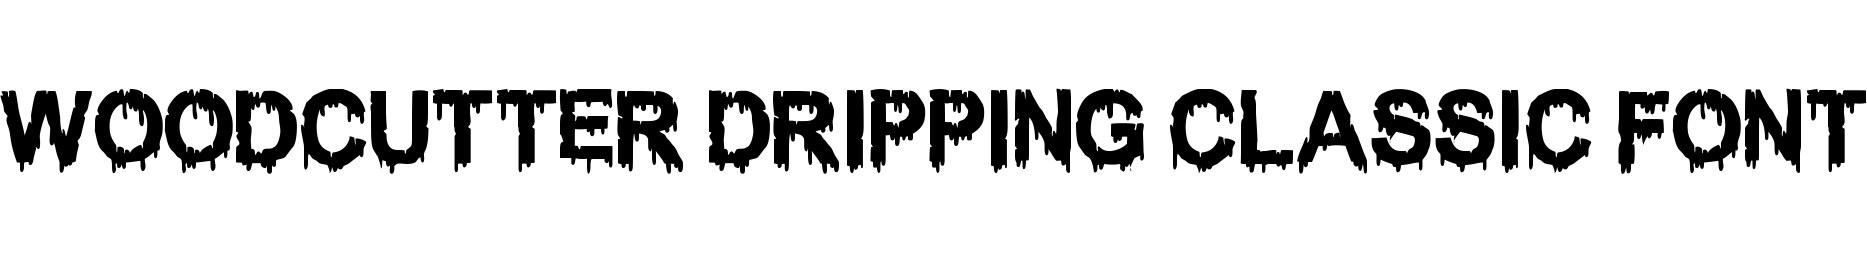 WOODCUTTER DRIPPING CLASSIC FONT